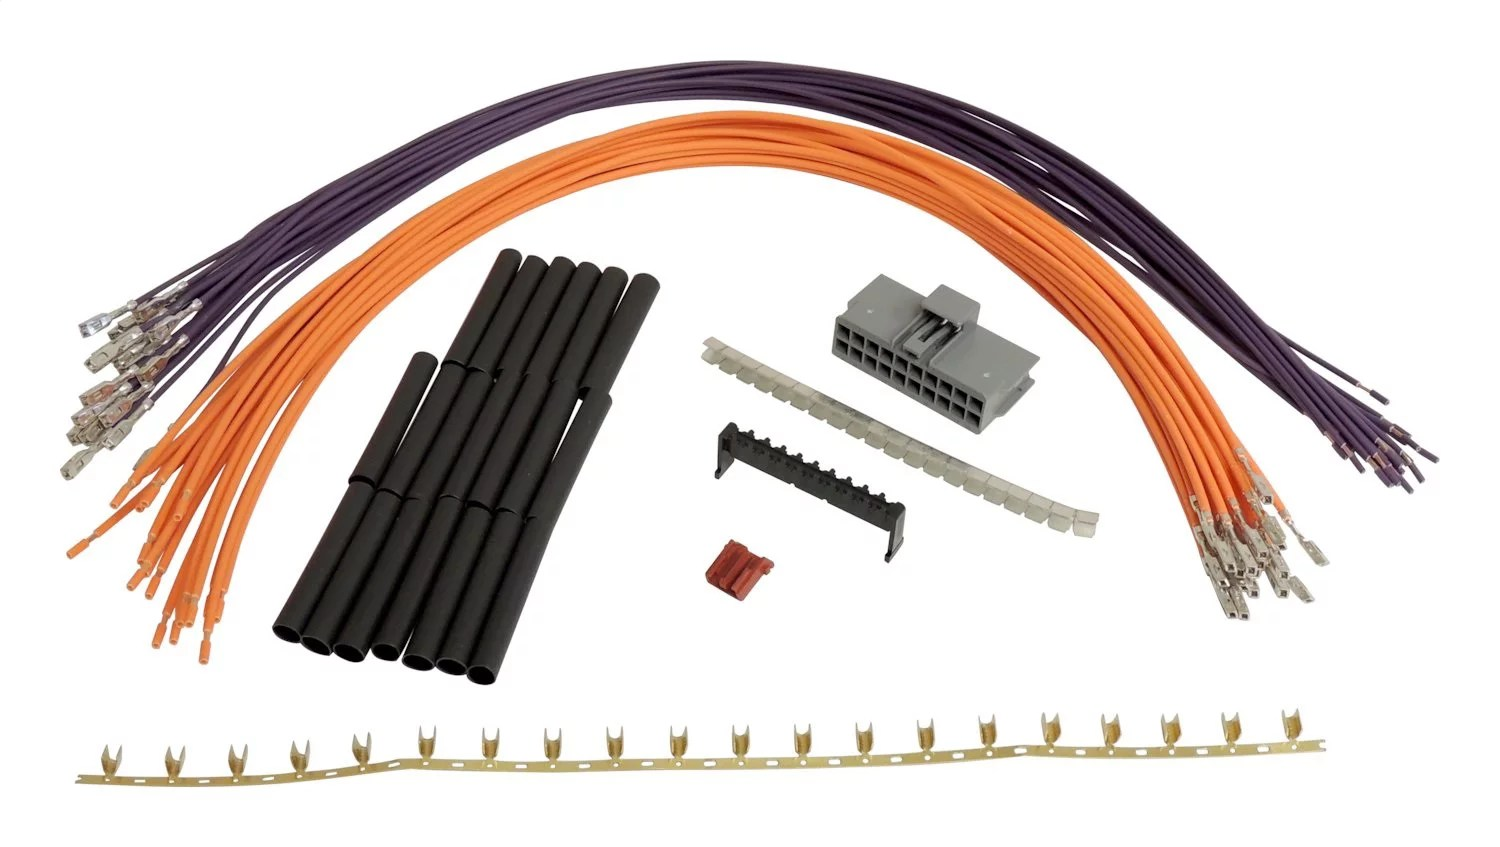 hight resolution of crown automotive 5183442aa cas5183442aa wiring harness repair kit kia wire harness repair kit crown automotive 5183442aa